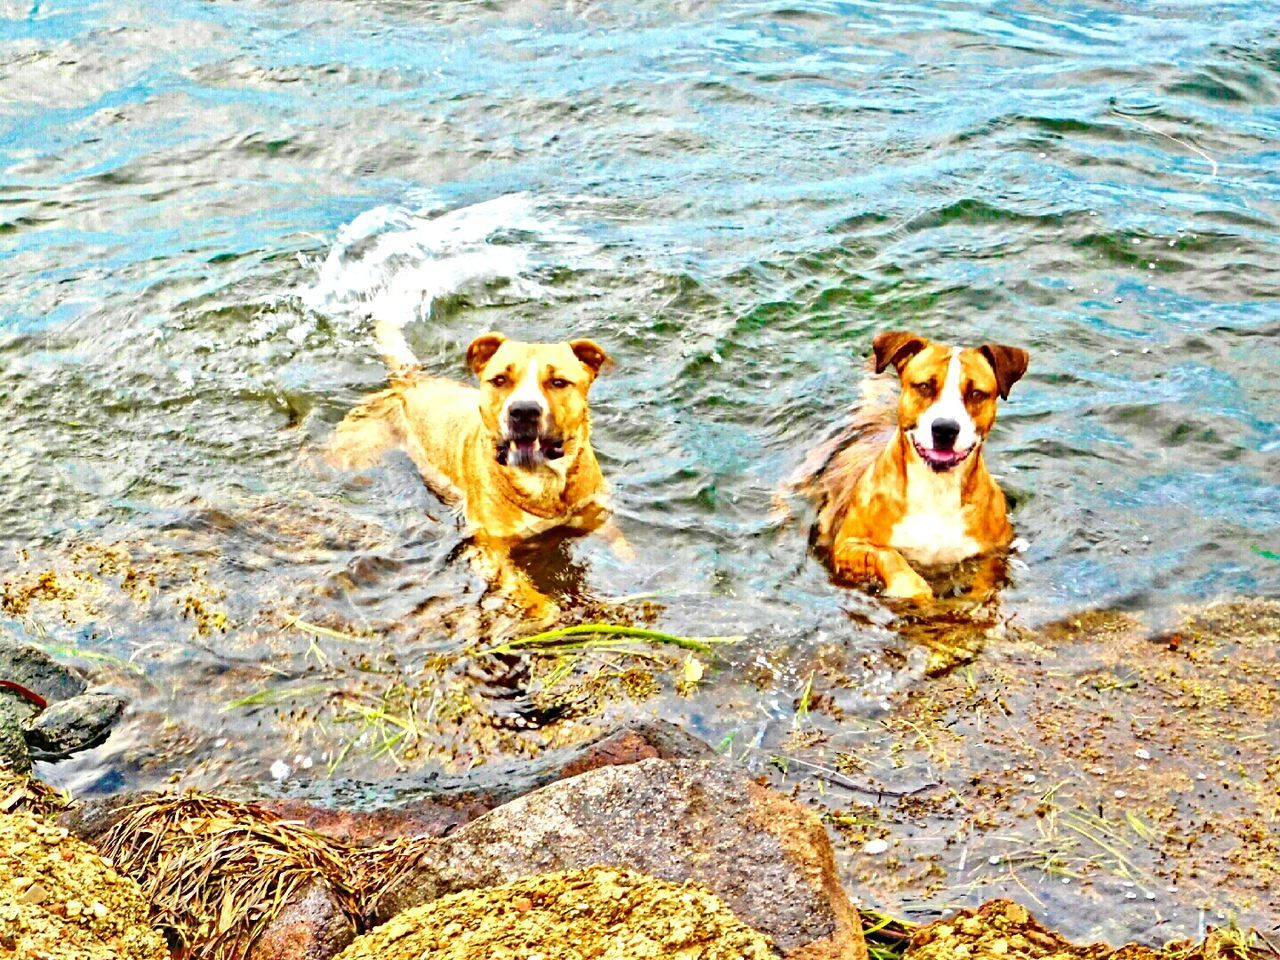 my gorgeous pups ❤Bliss❤ Femalephotographer Femalephotographerofthemonth Nikonl840 Dogs Swimming Lake Macquarie My Pittys❤ I Love My Pittbull ❤ I Love My Pitbull ❤ Pitbulls